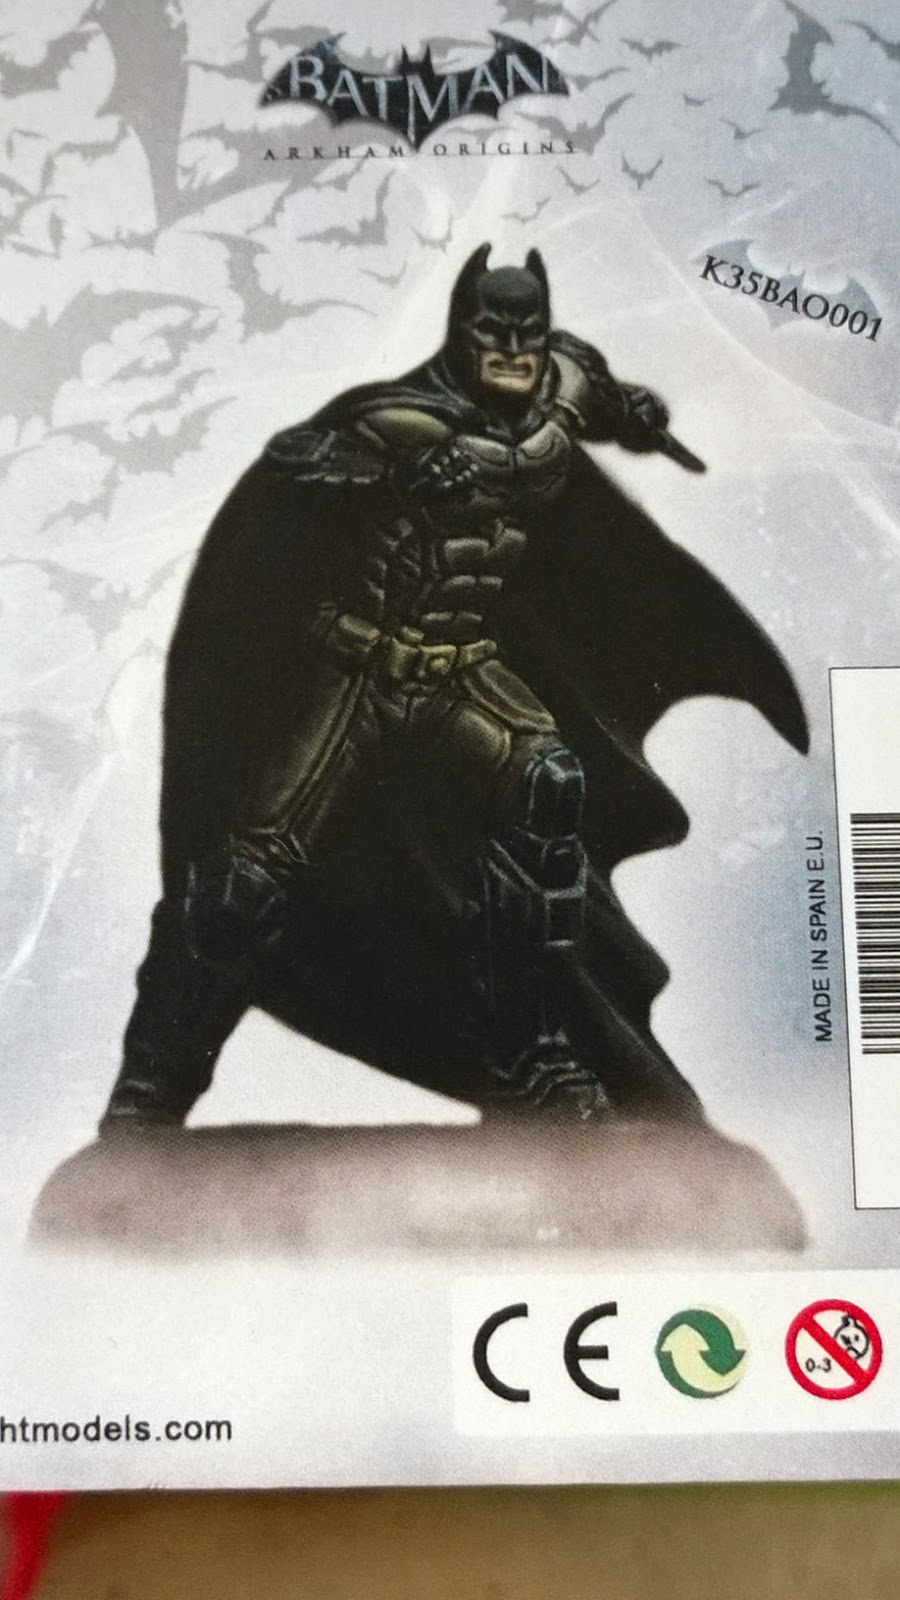 Knight models batman